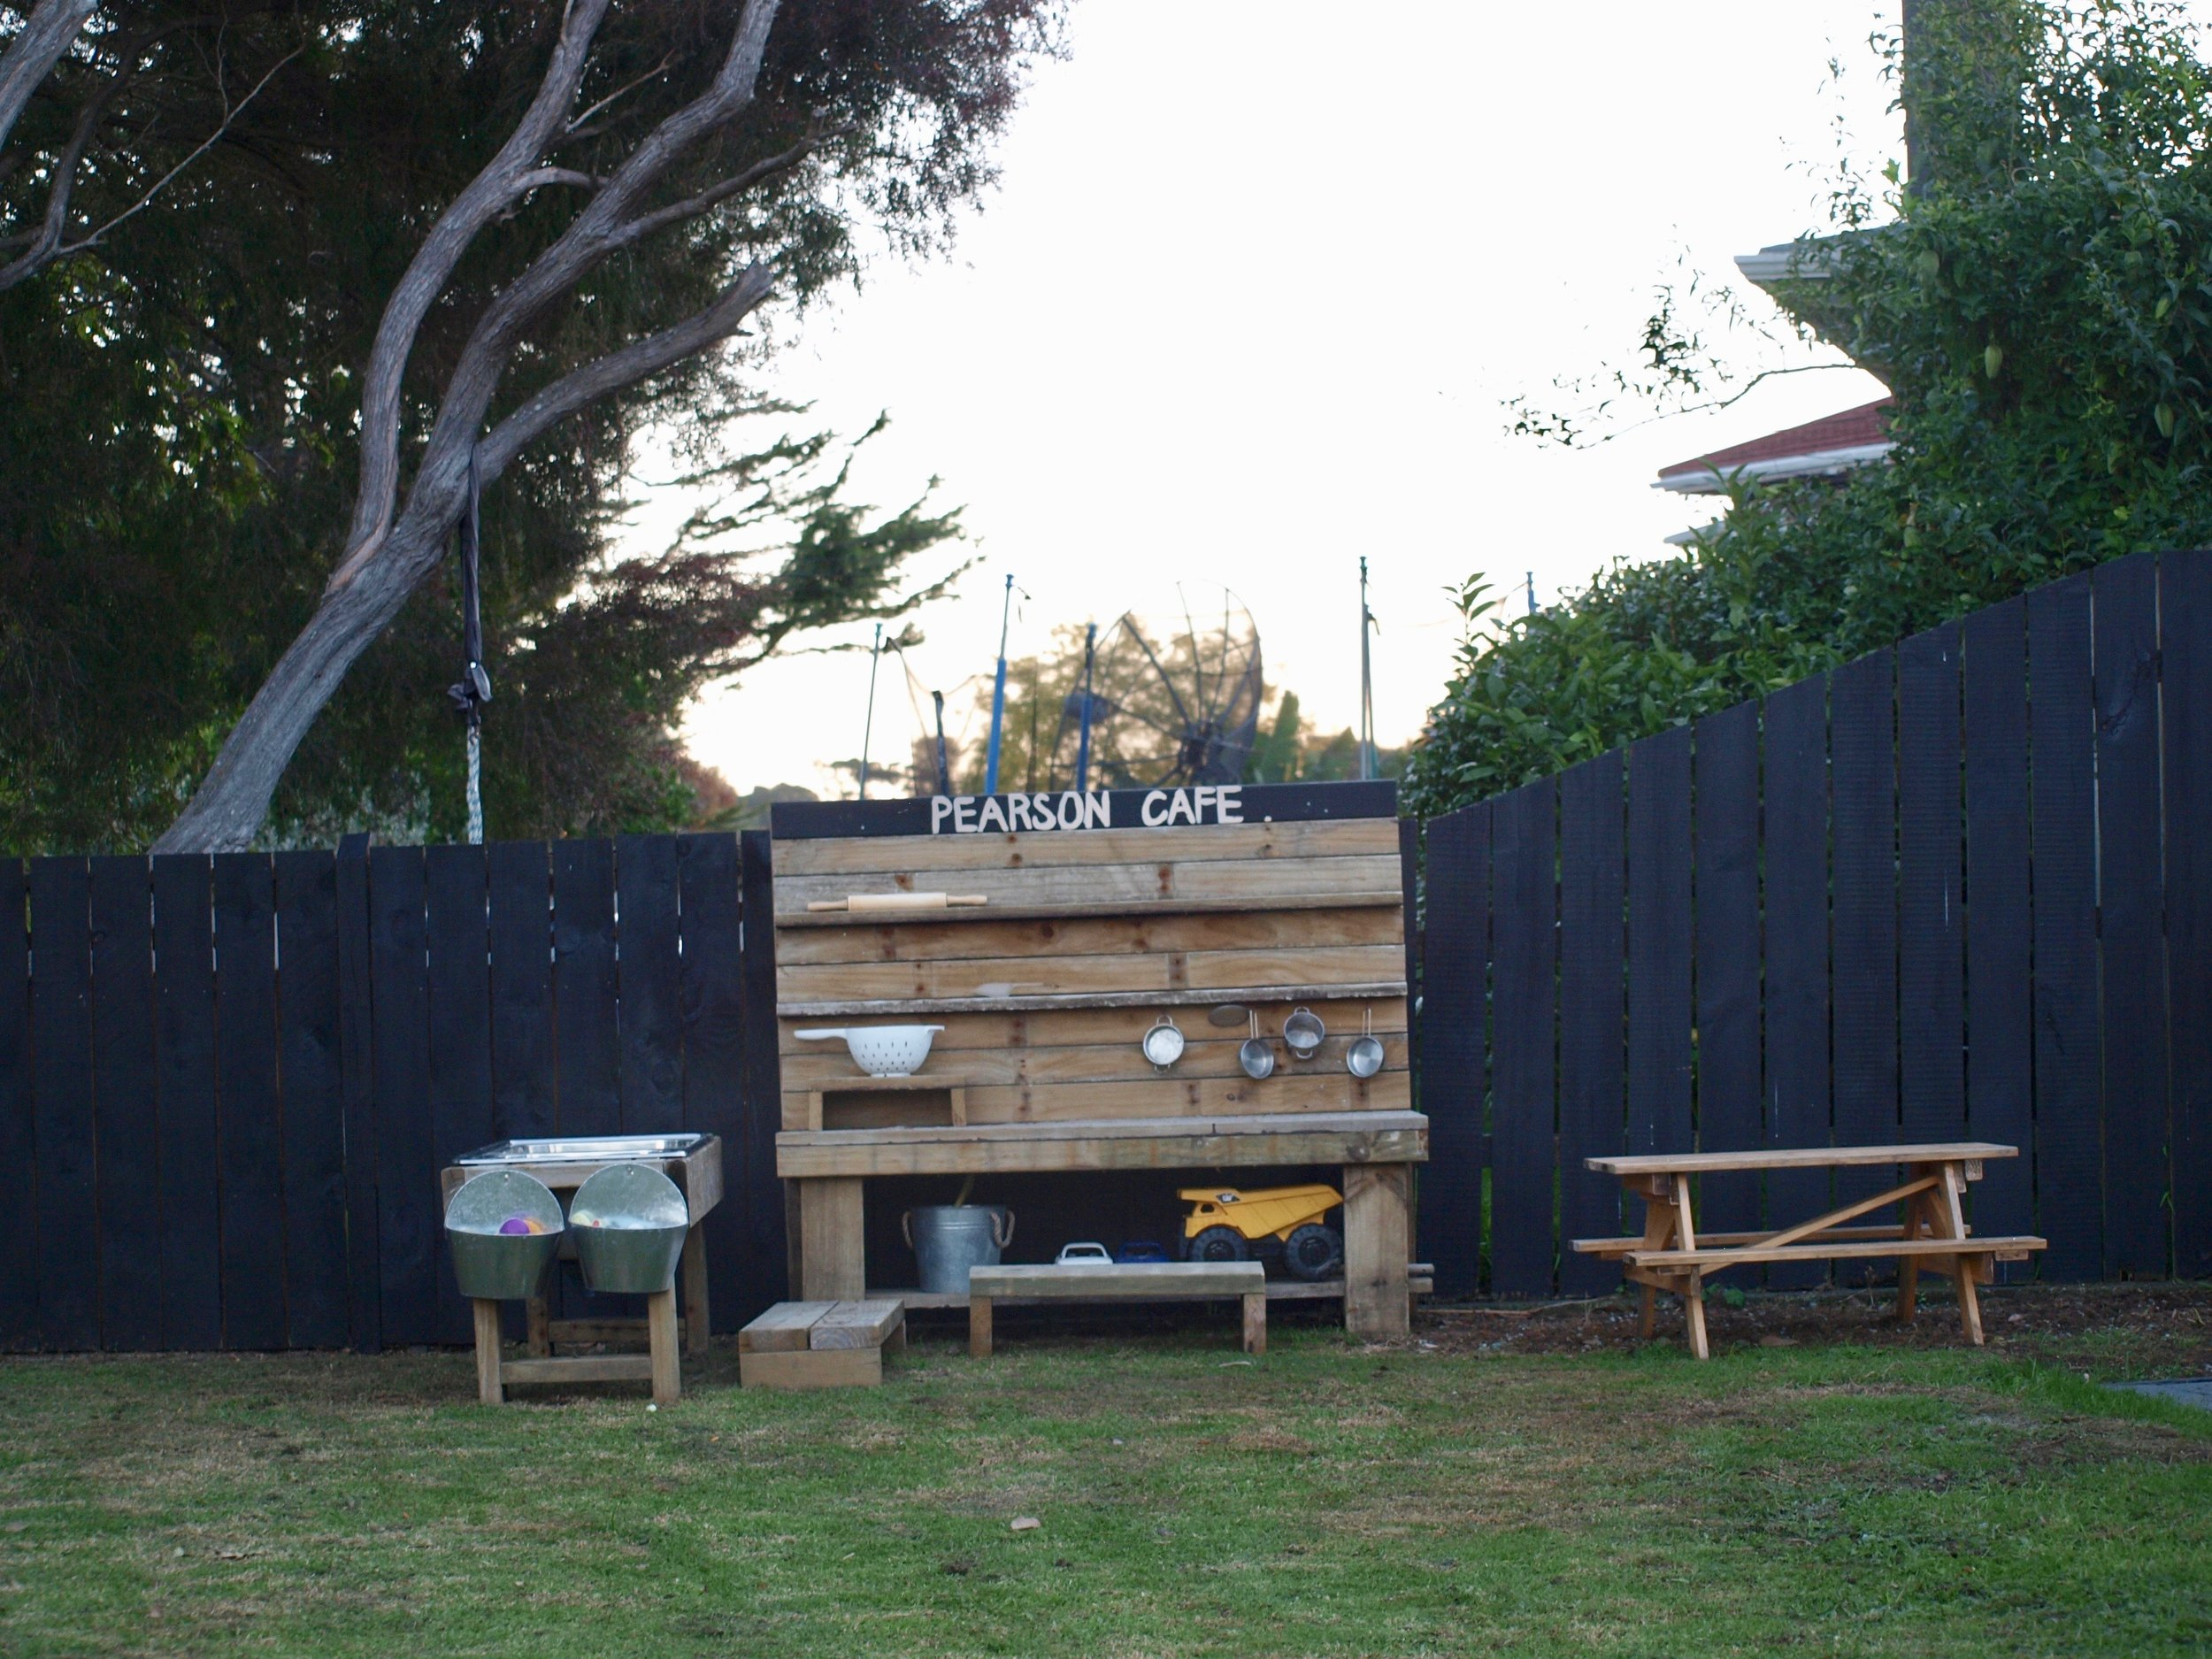 Pearson and Projects Outdoor Reno - 8.jpg